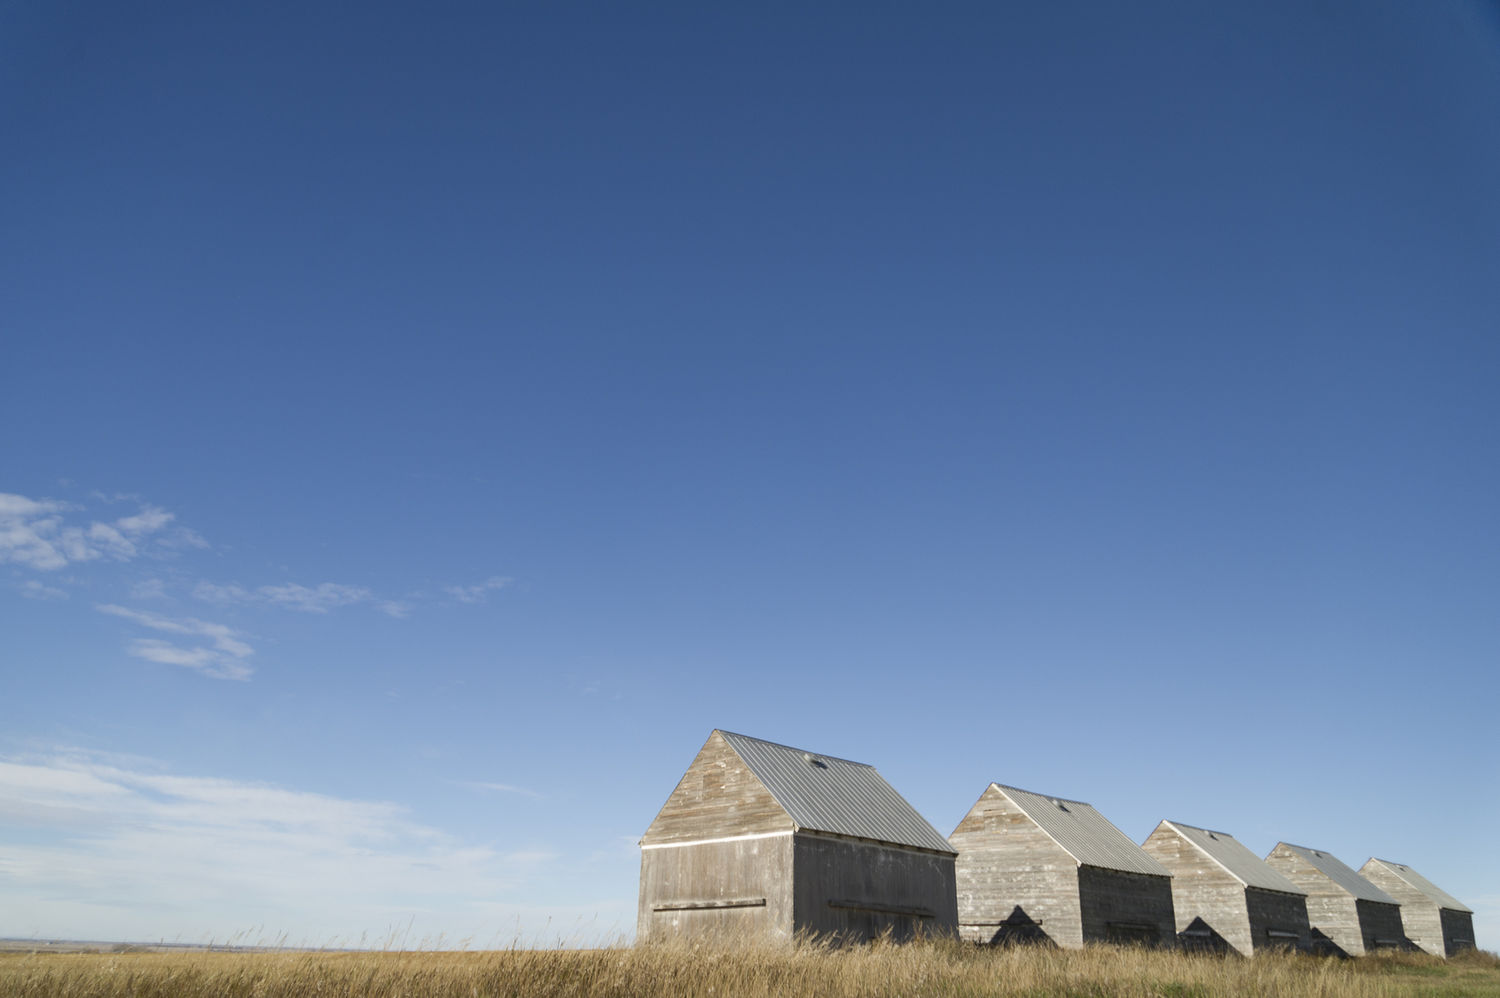 Old Grain Sheds- October 12, 2015